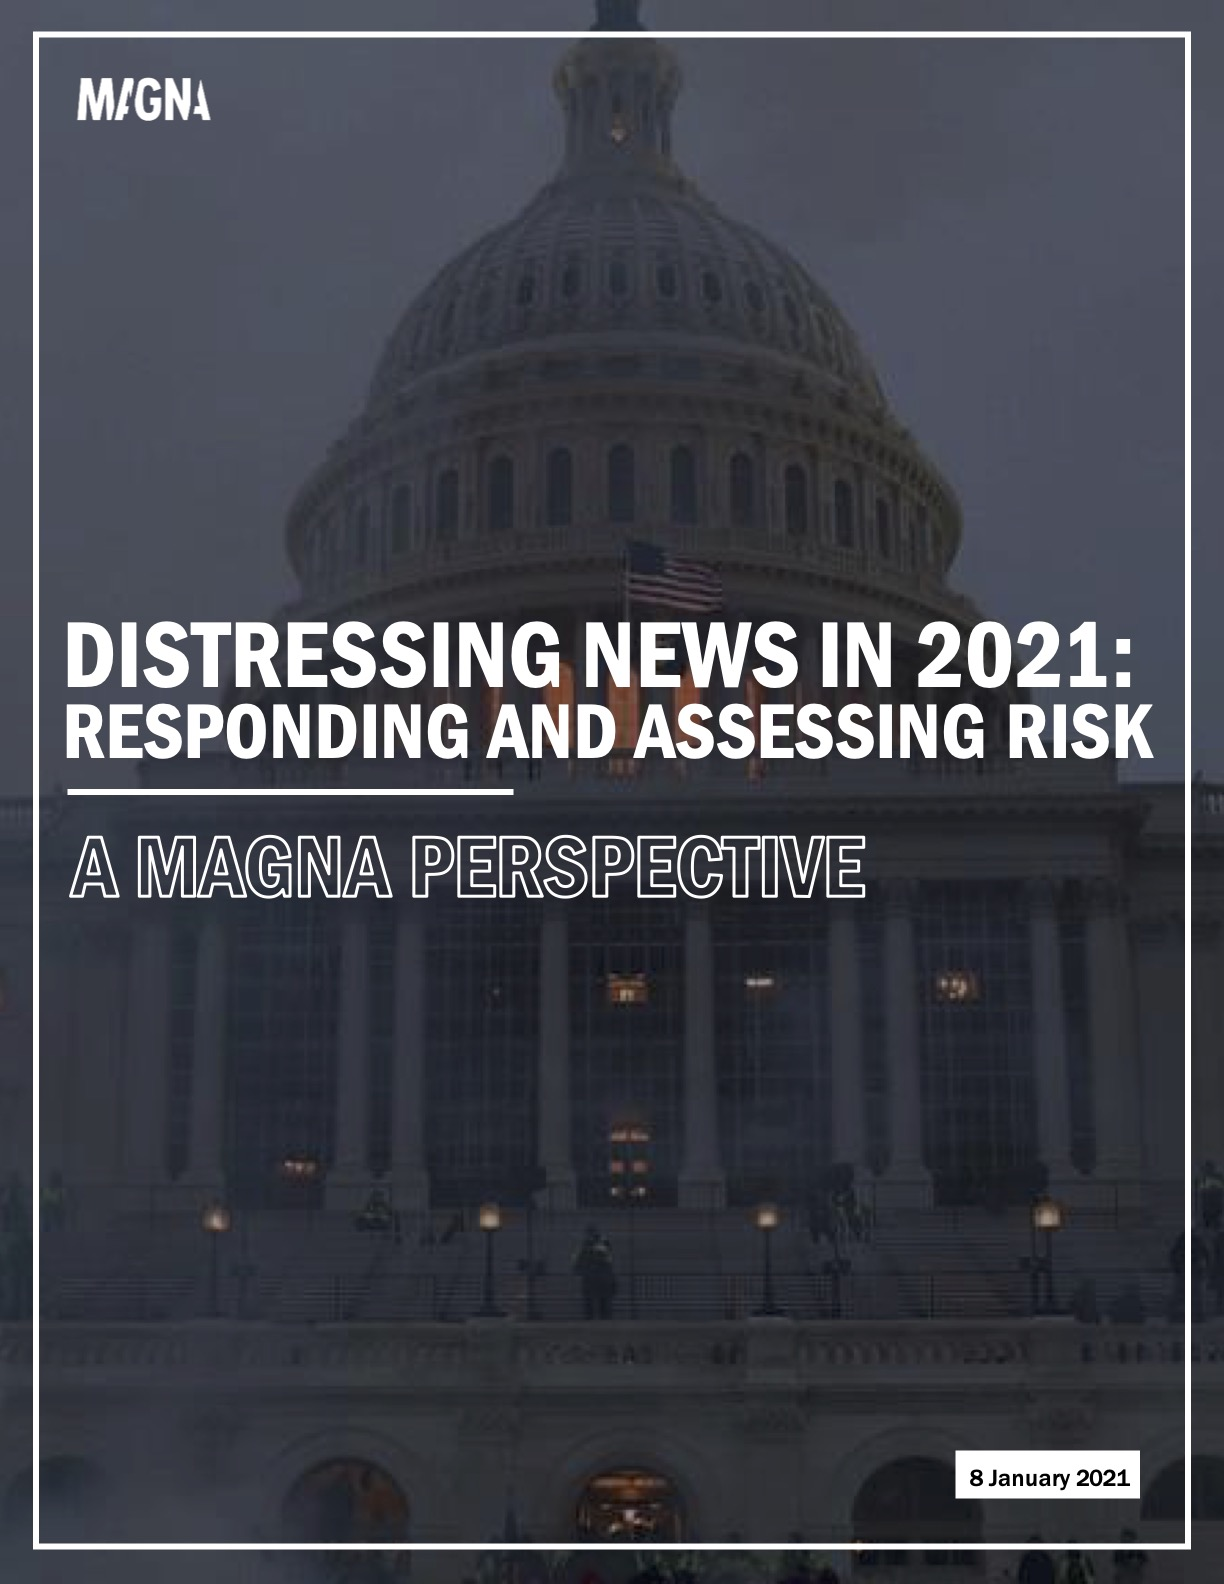 Distressing News in 2021: Responding and Assessing Risk